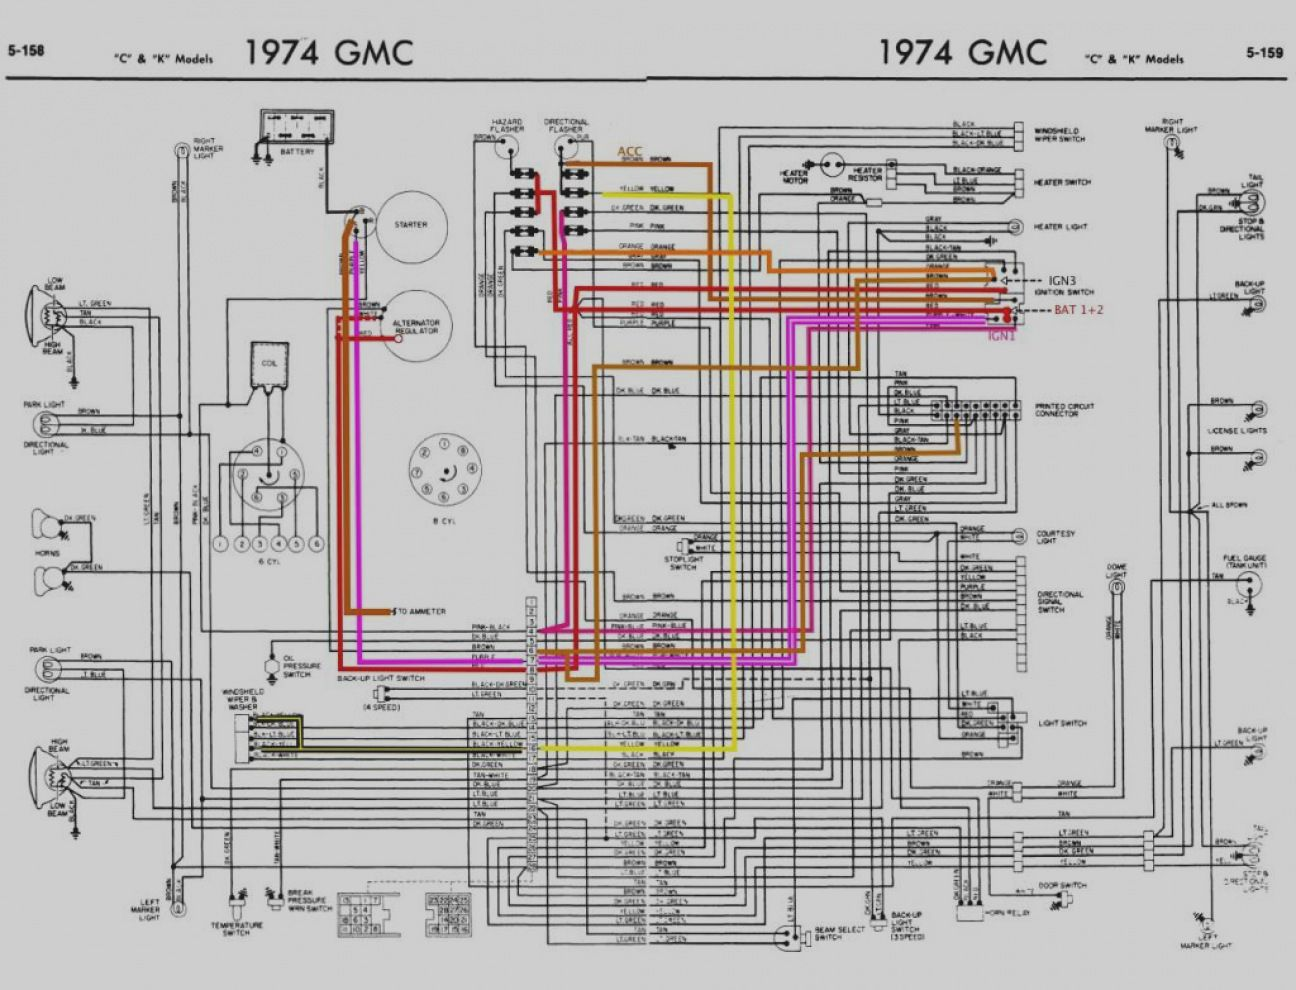 hight resolution of winnebago wiring diagrams wiring diagram forward 1973 winnebago wiring diagram manual of wiring diagram 1973 winnebago